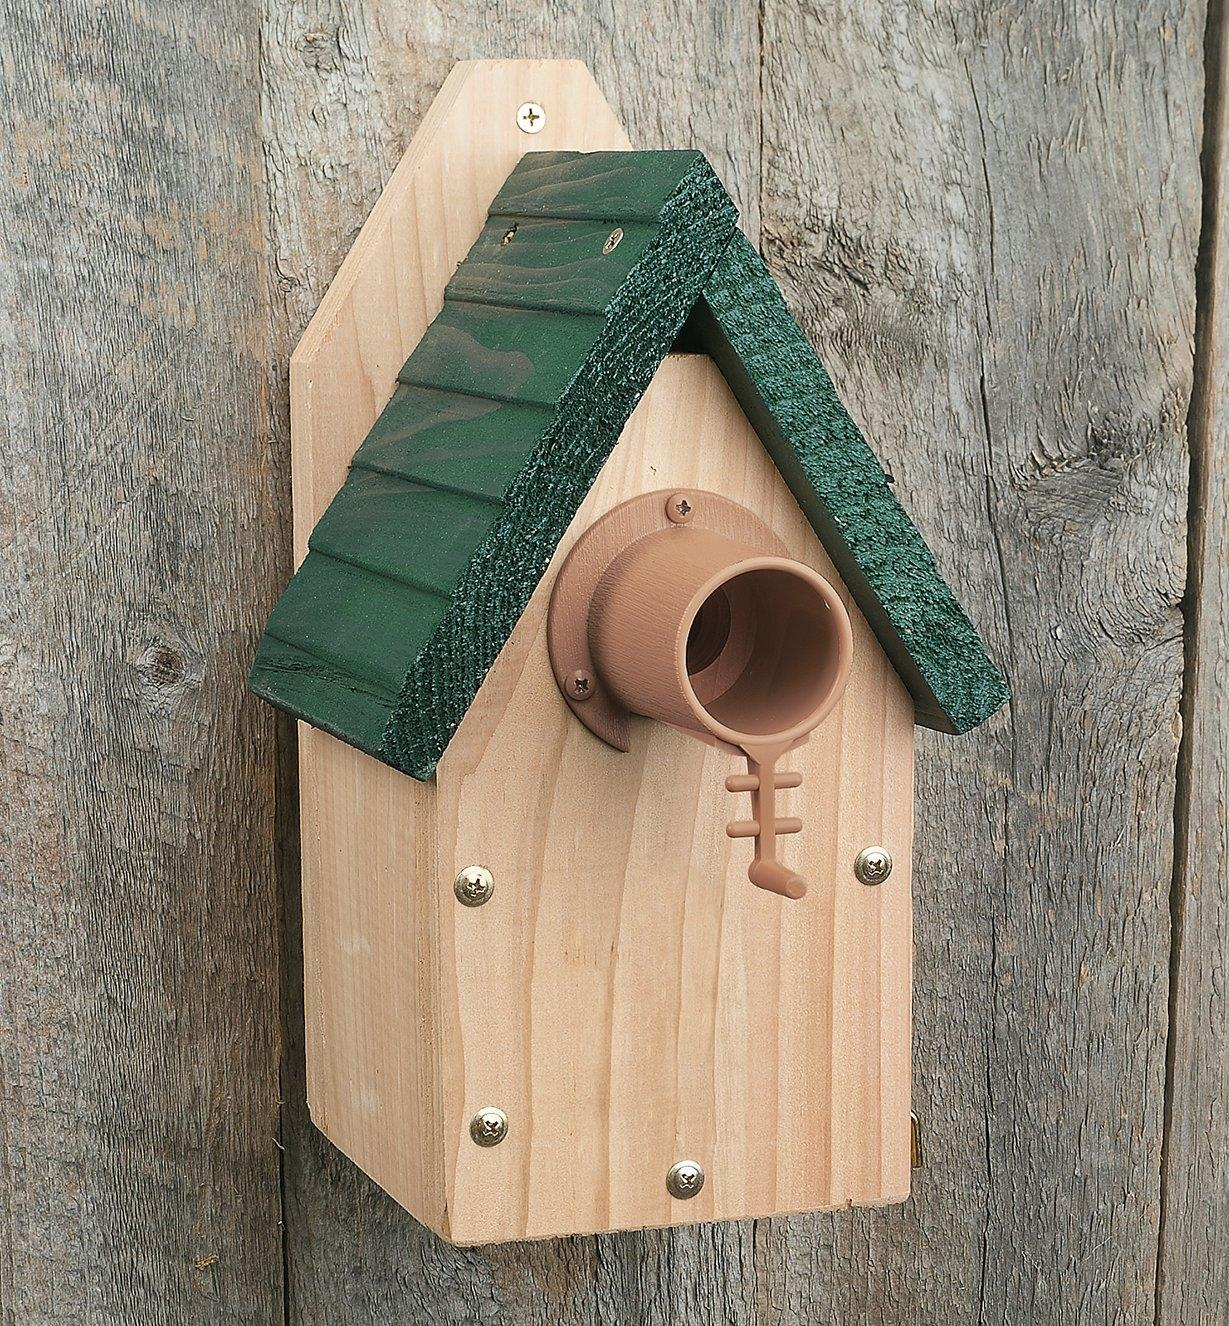 Example of Bird Guardian installed on a birdhouse